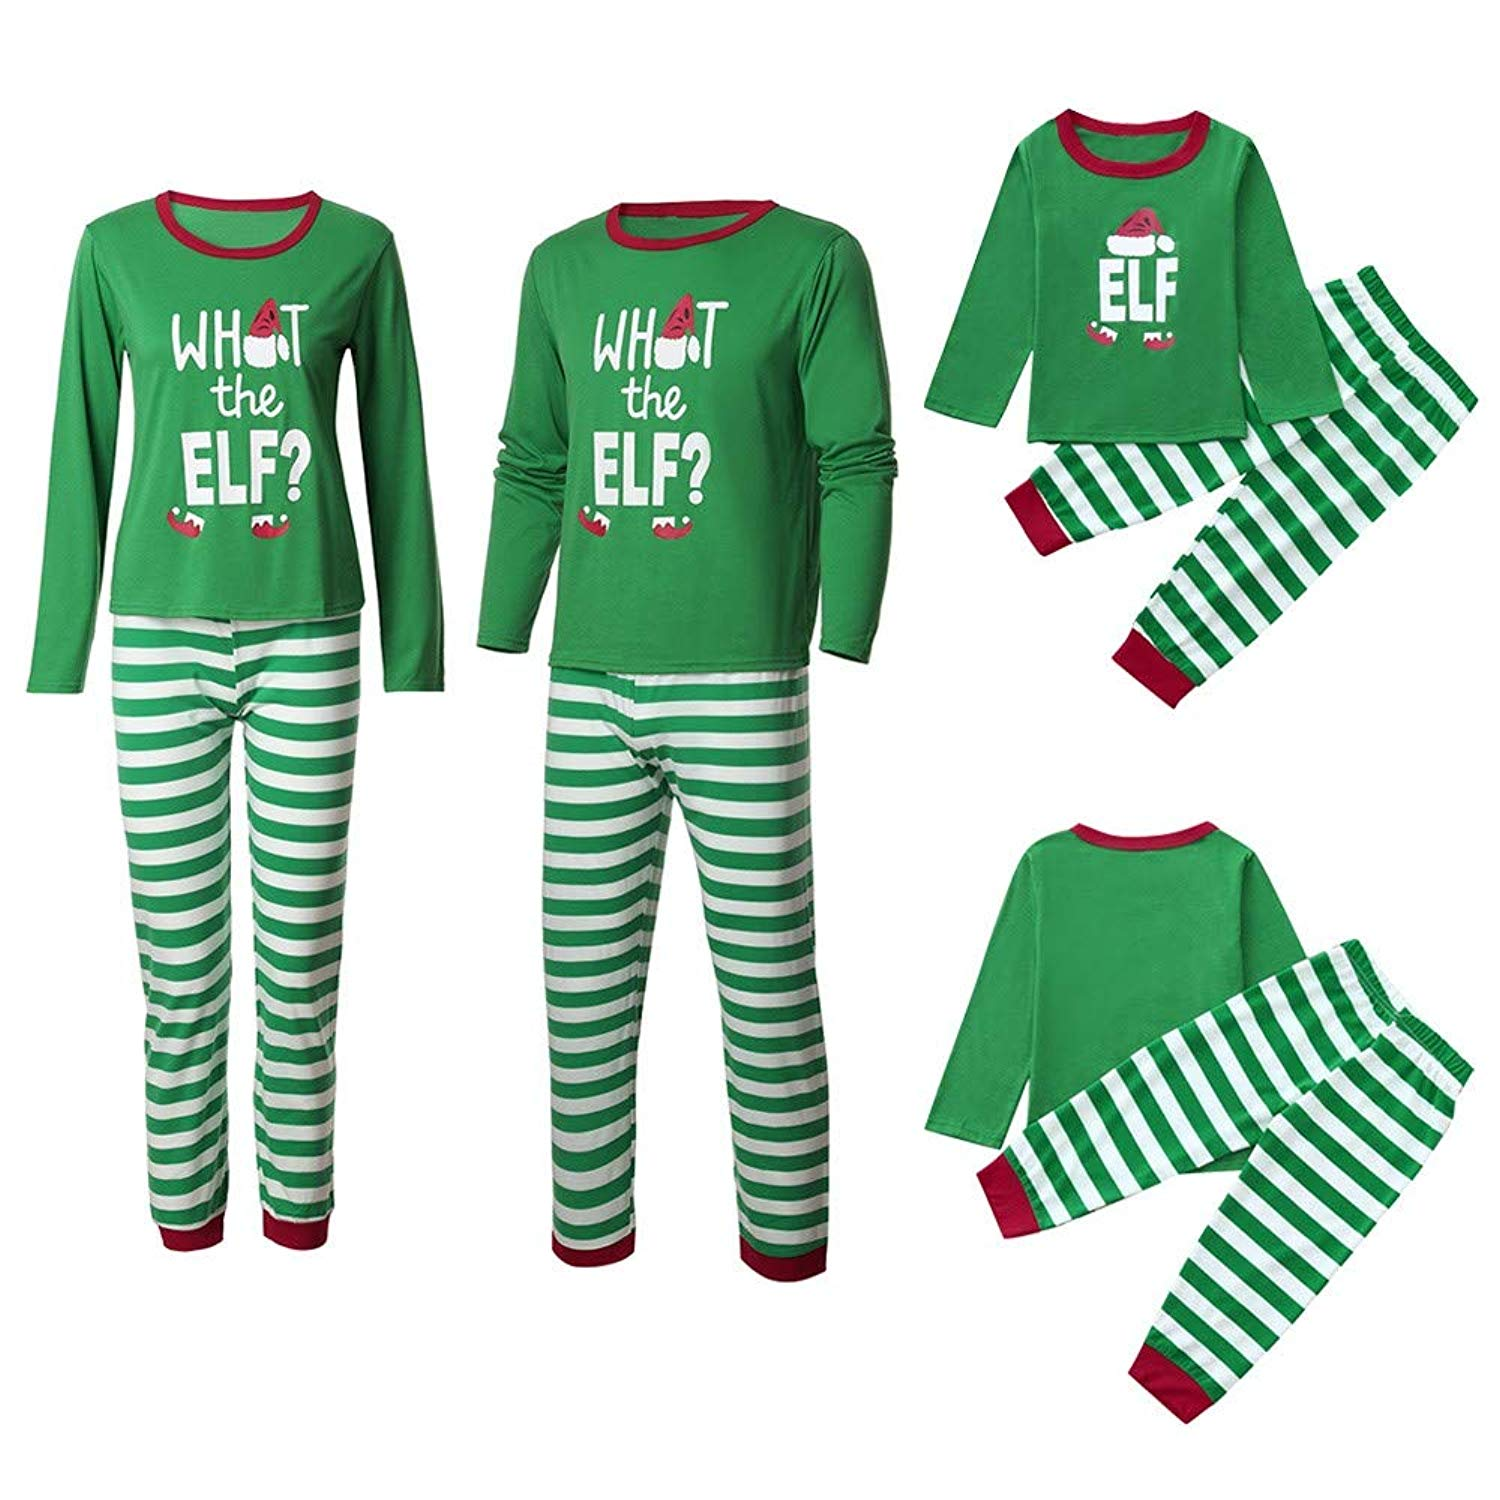 4716c26bbd Get Quotations · Family Matching Pajamas Sets Christmas Pajamas Outfit  Striped Letter Holiday Clothes PJ Sets Mom Dad Kids